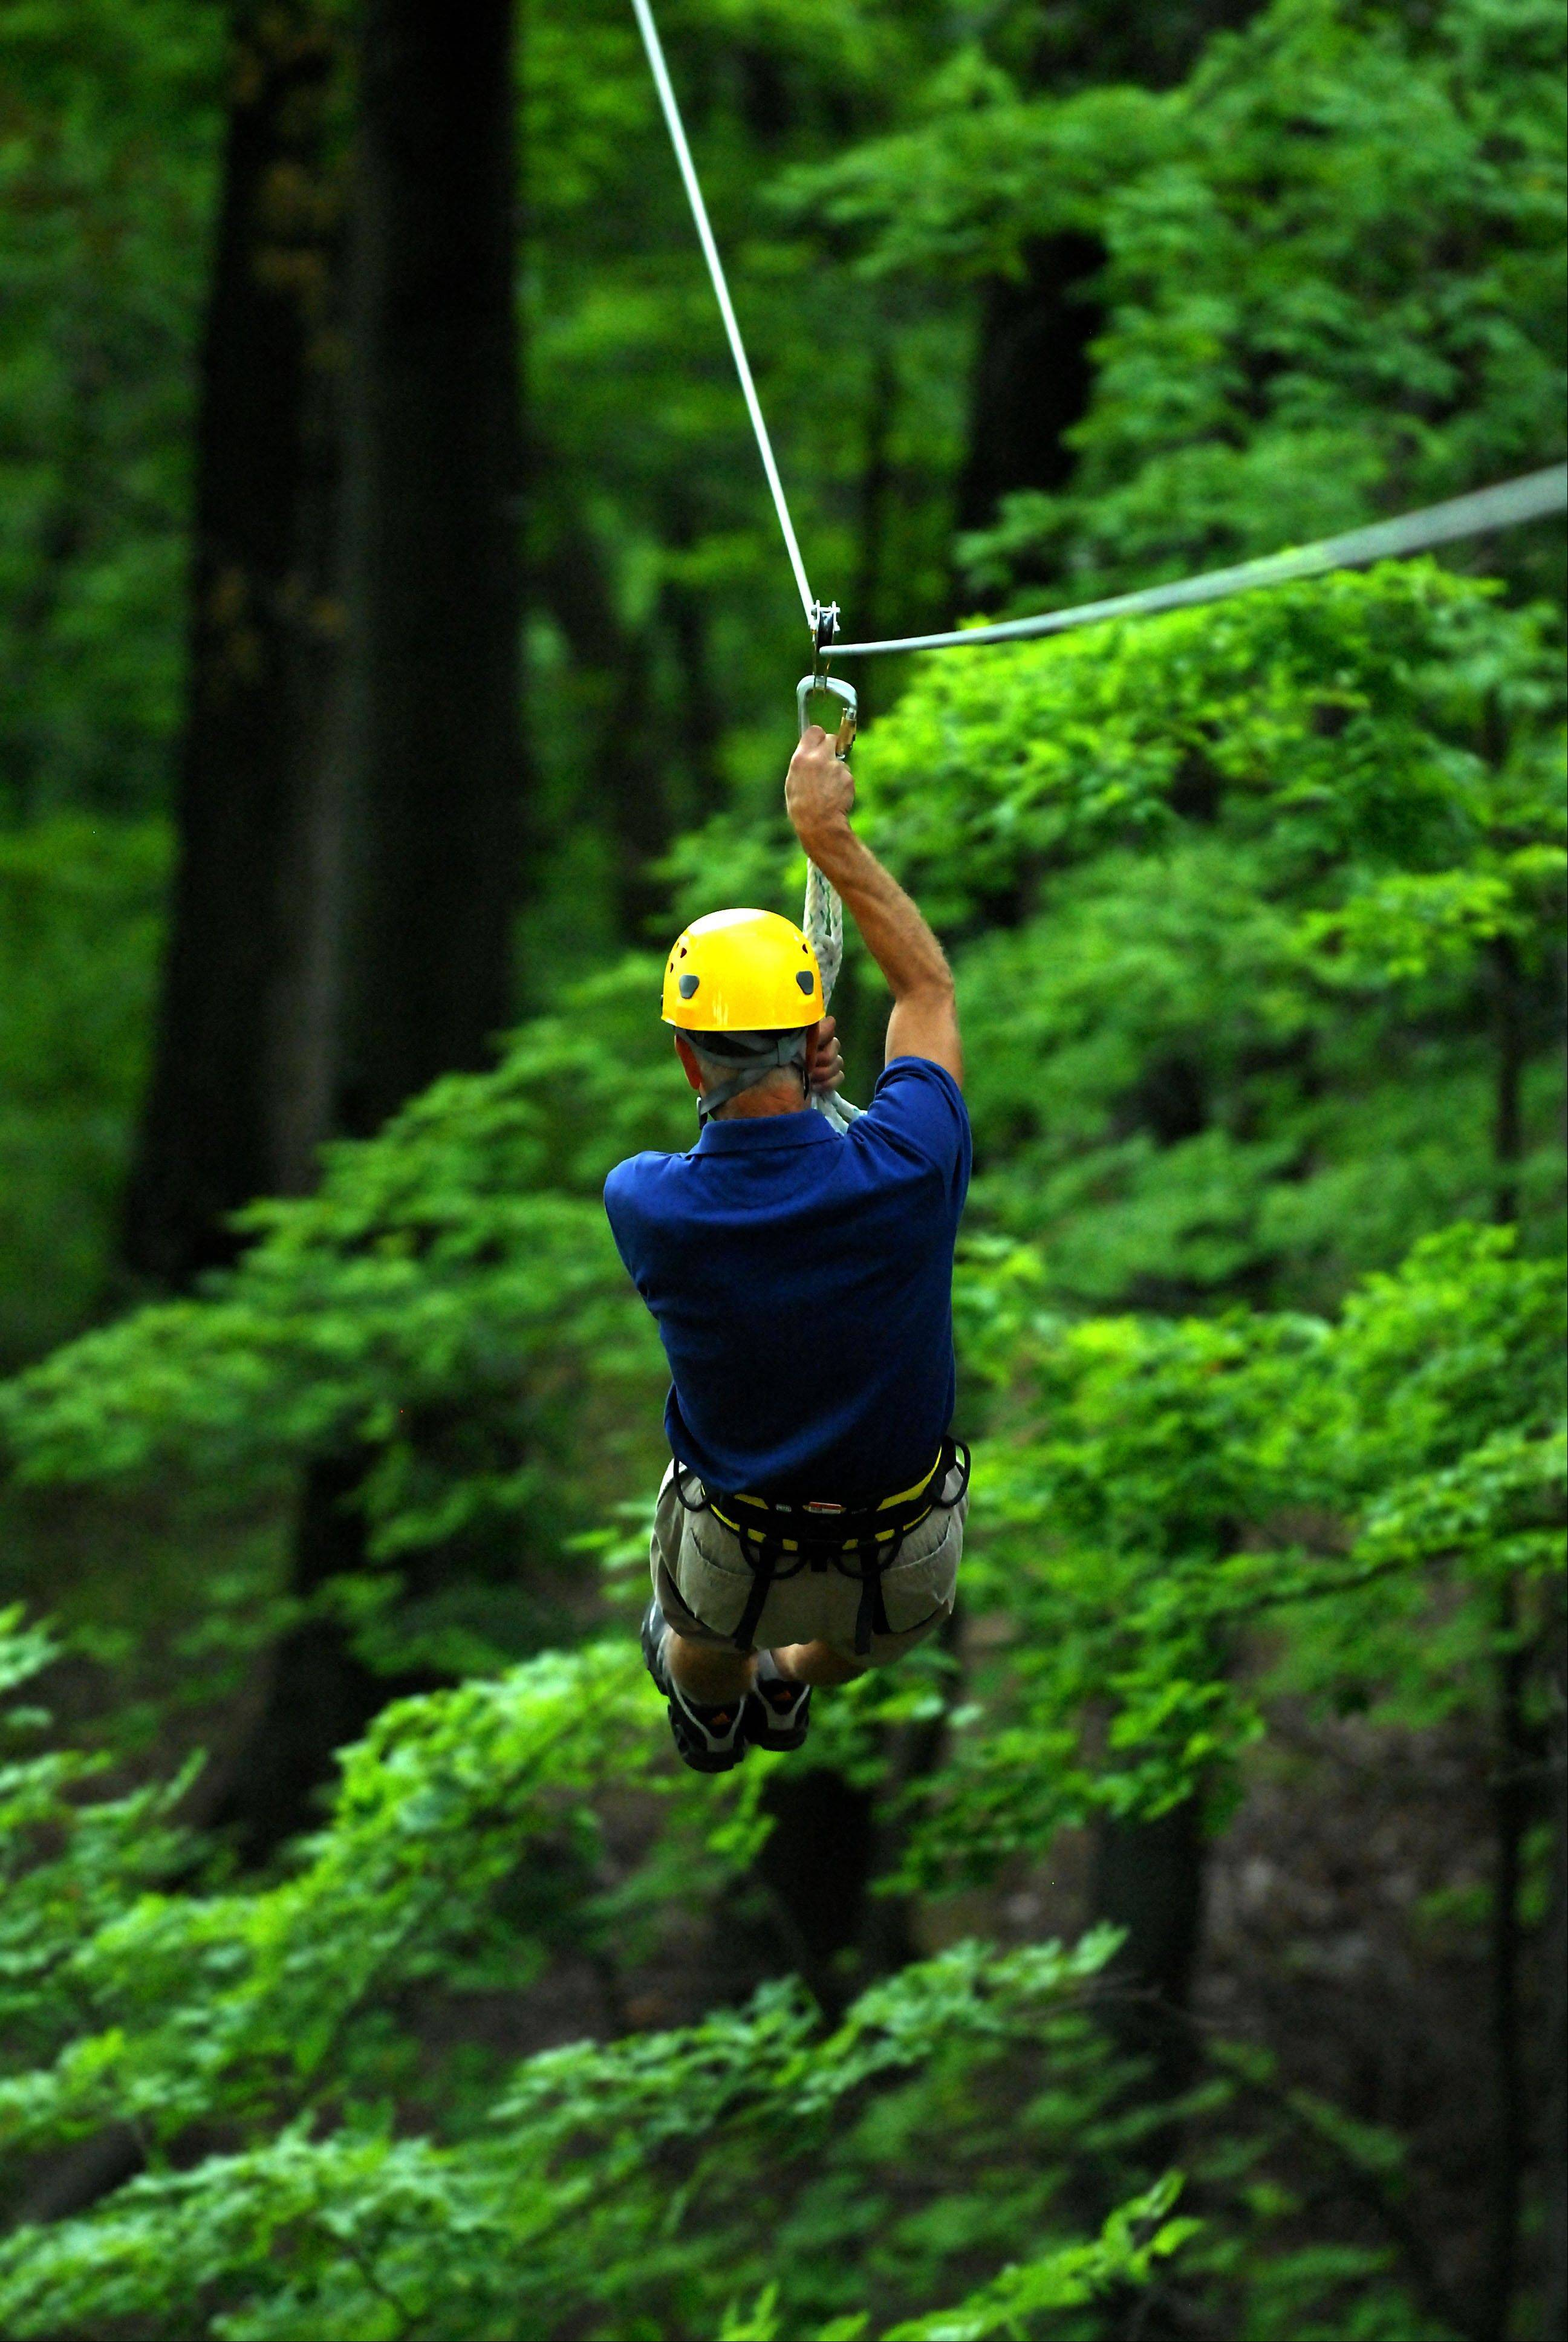 Cross over the Little Miami River at heights of more than 200 feet when you book an Ozone Zipline Adventures in Warren County, Ohio.